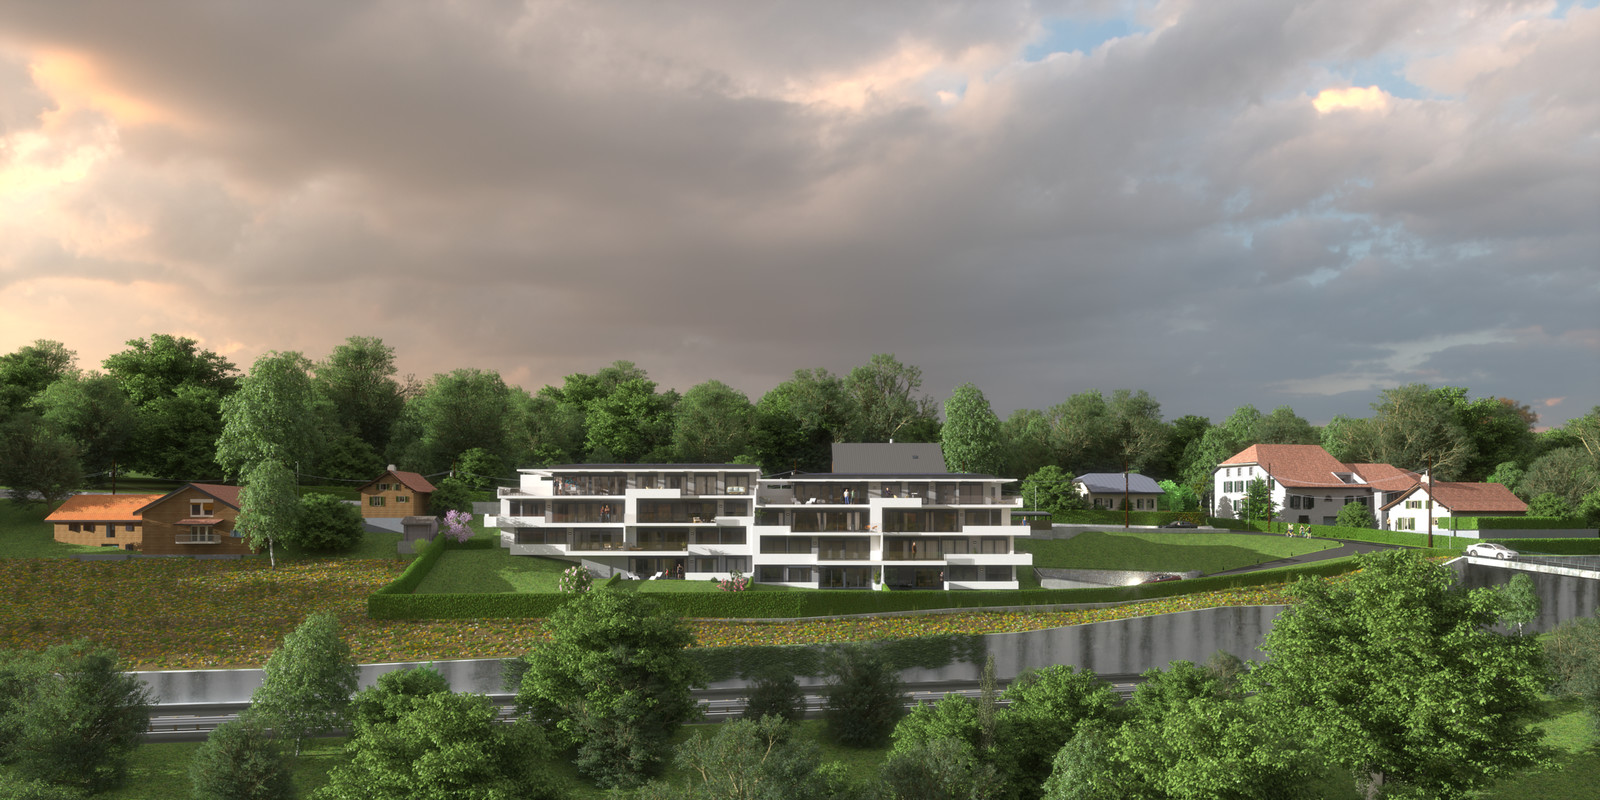 SketchUp 2018 + Thea Render  Project Lutry Thea Full work file 05 No Fog 2018-Scene 124 2 pt layers 207 hdr  HDR by HDRI-SKIES found here: http://hdri-skies.com/shop/hdri-sky-207/